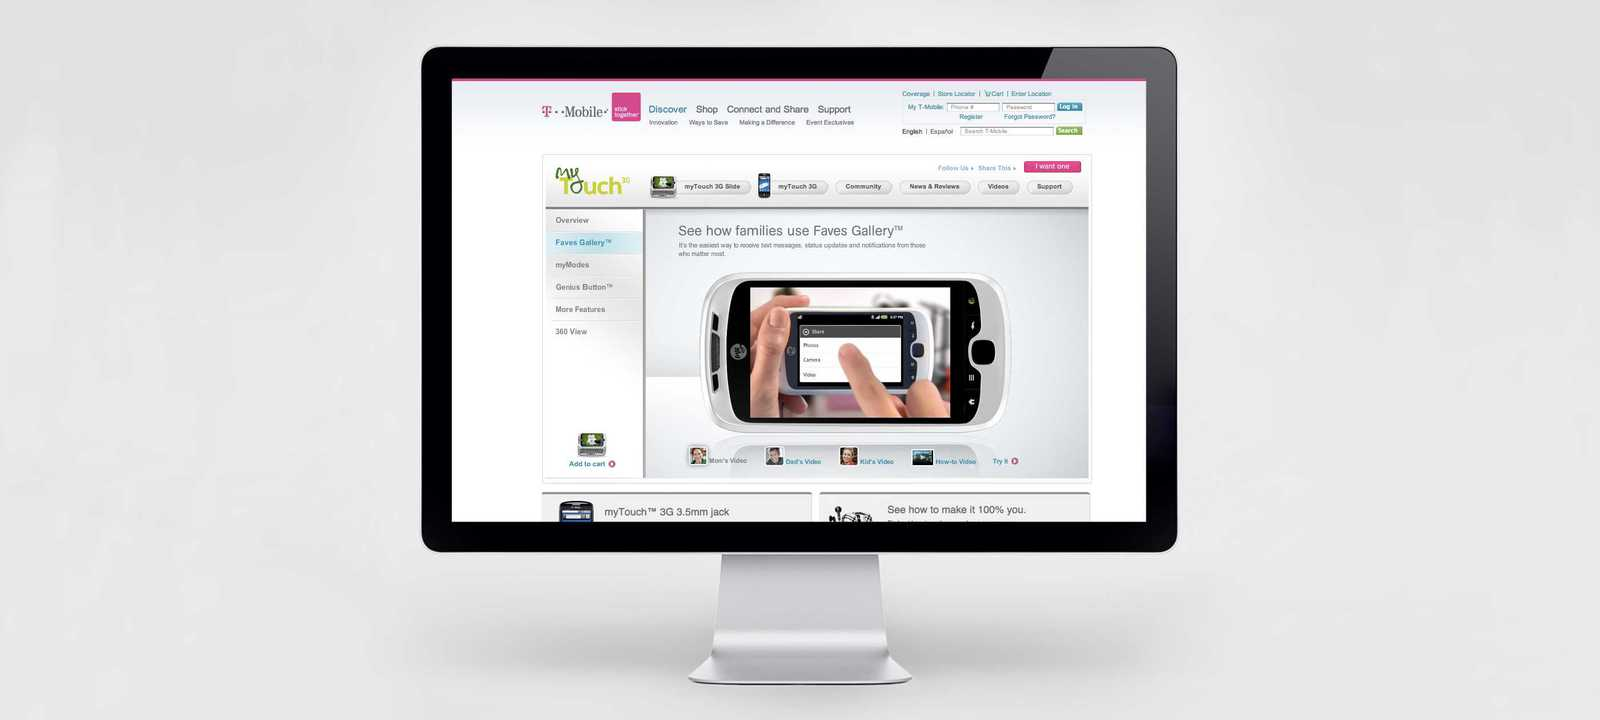 T-Mobile Cell Phone Custom Android Video Mobile App Page